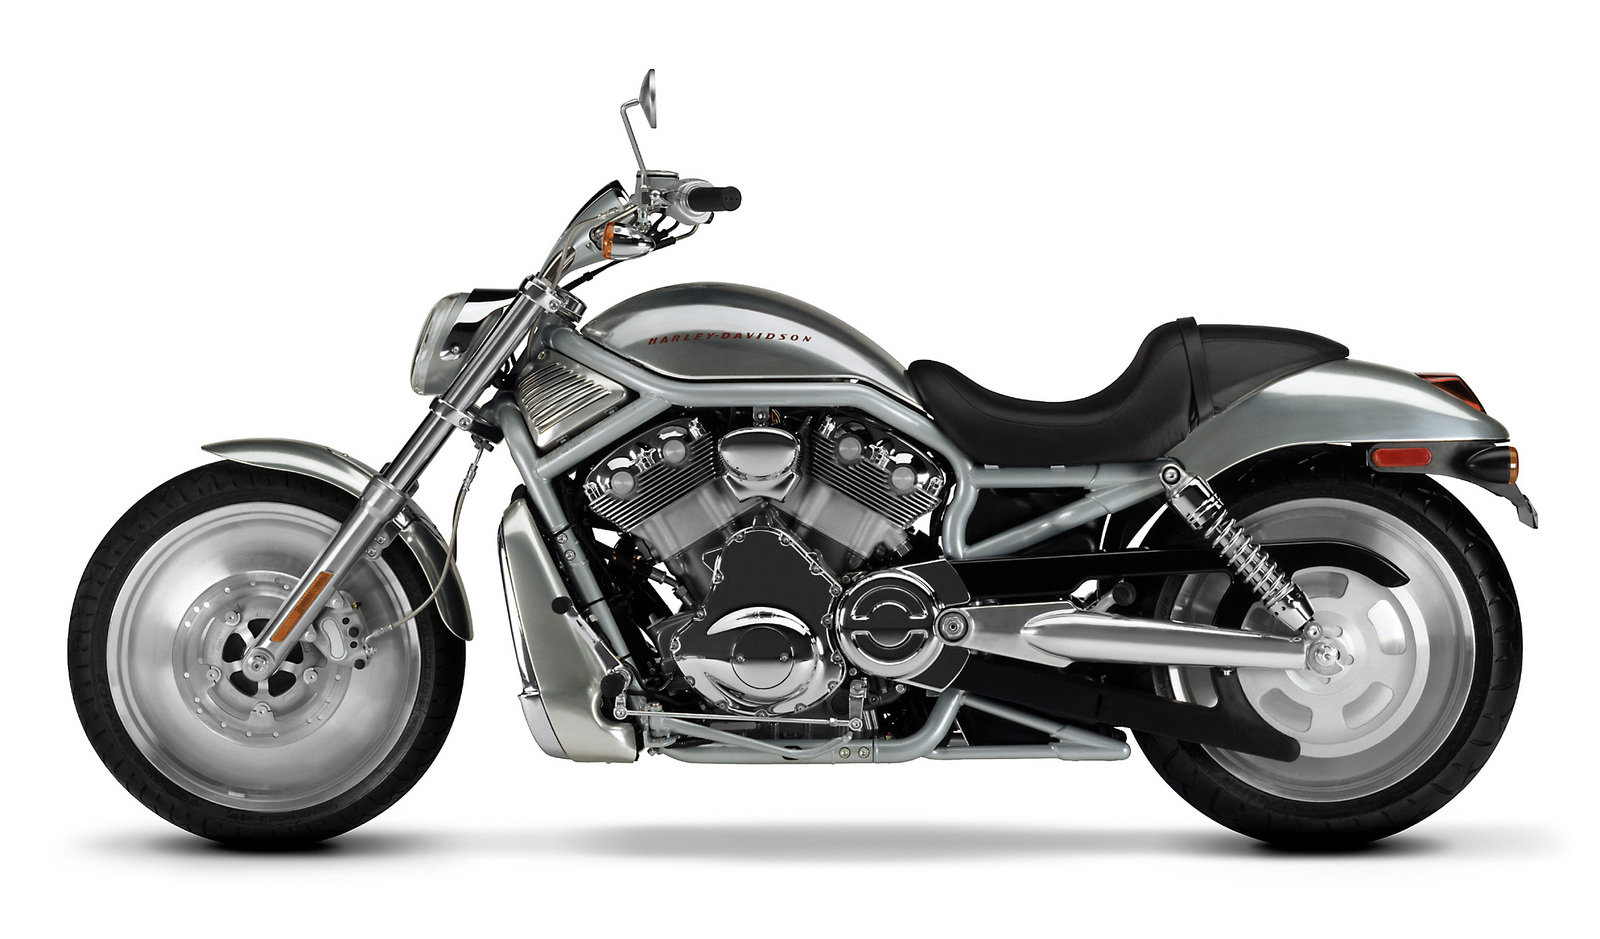 New Name And Address For Harley Davidson Of Youngstown Crew Picture 165291 Motorcycle News